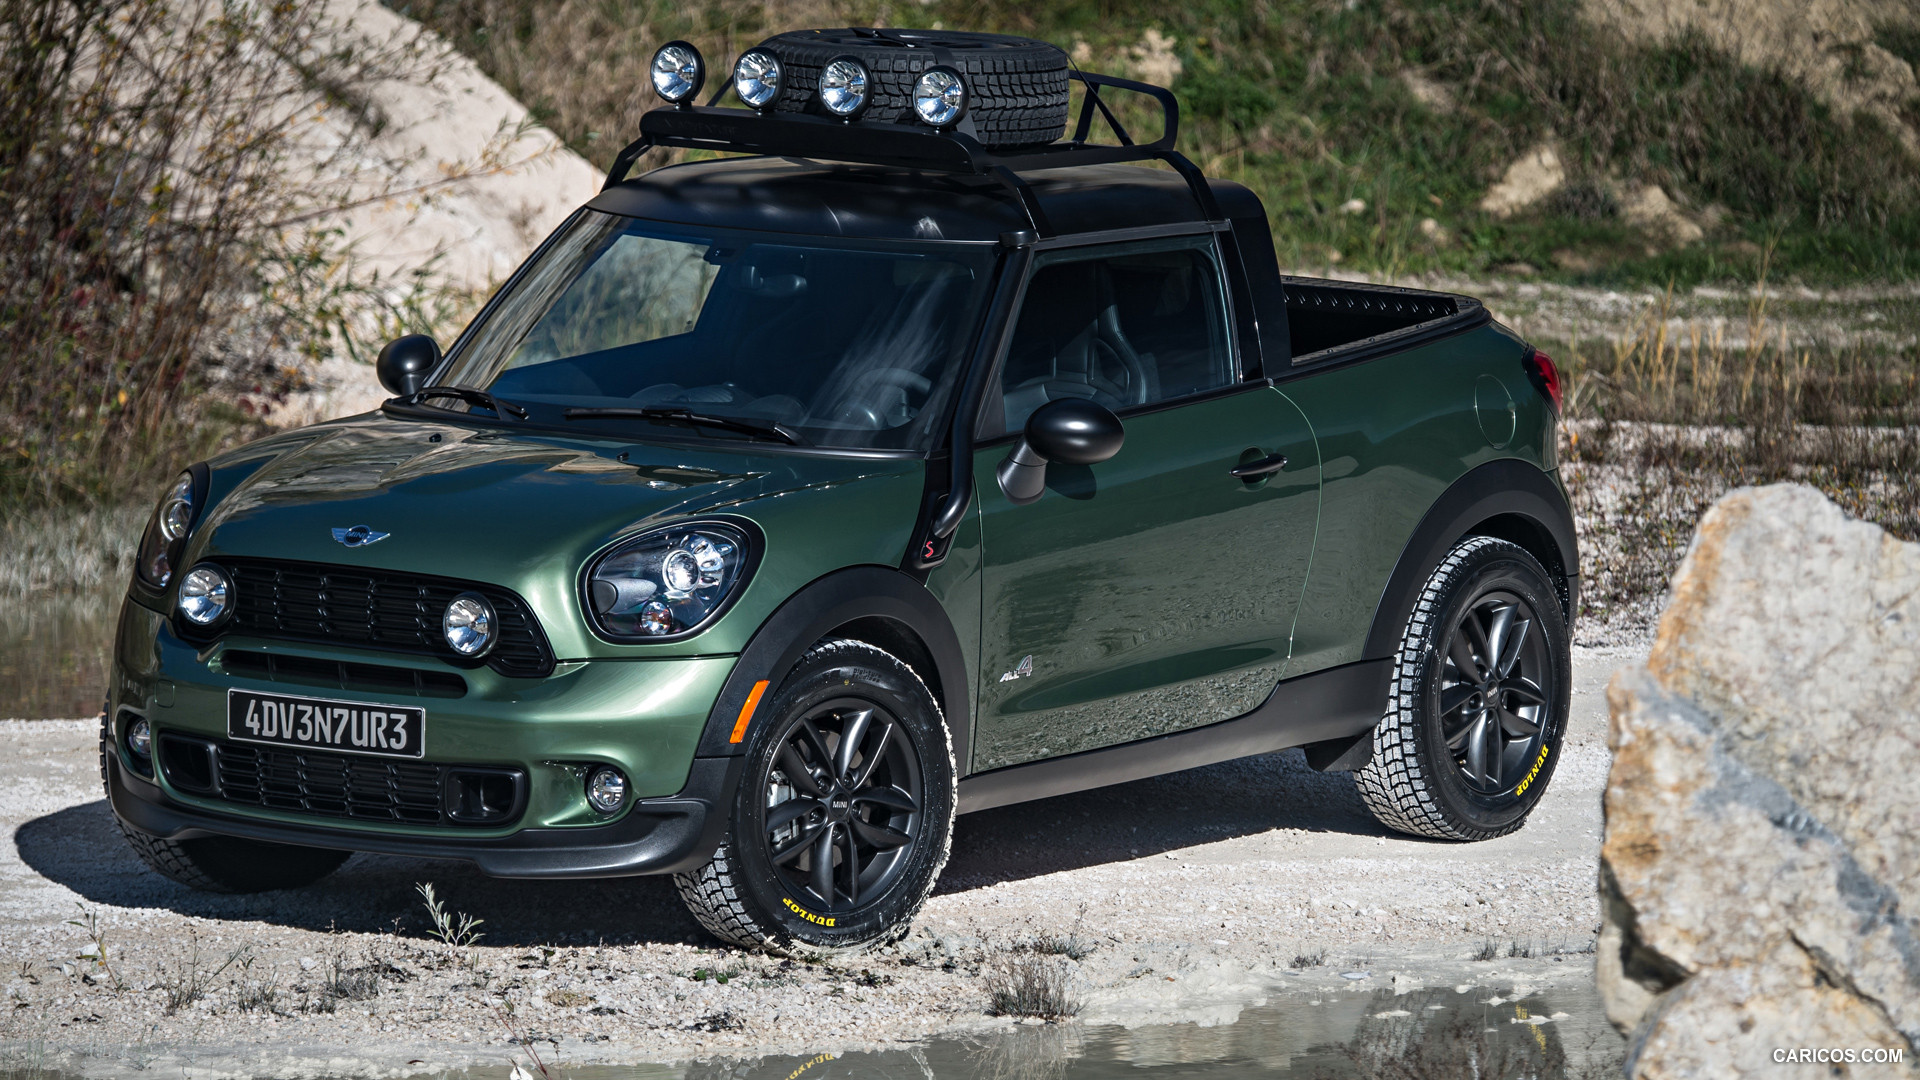 2014 Mini Paceman Adventure Backgrounds on Wallpapers Vista